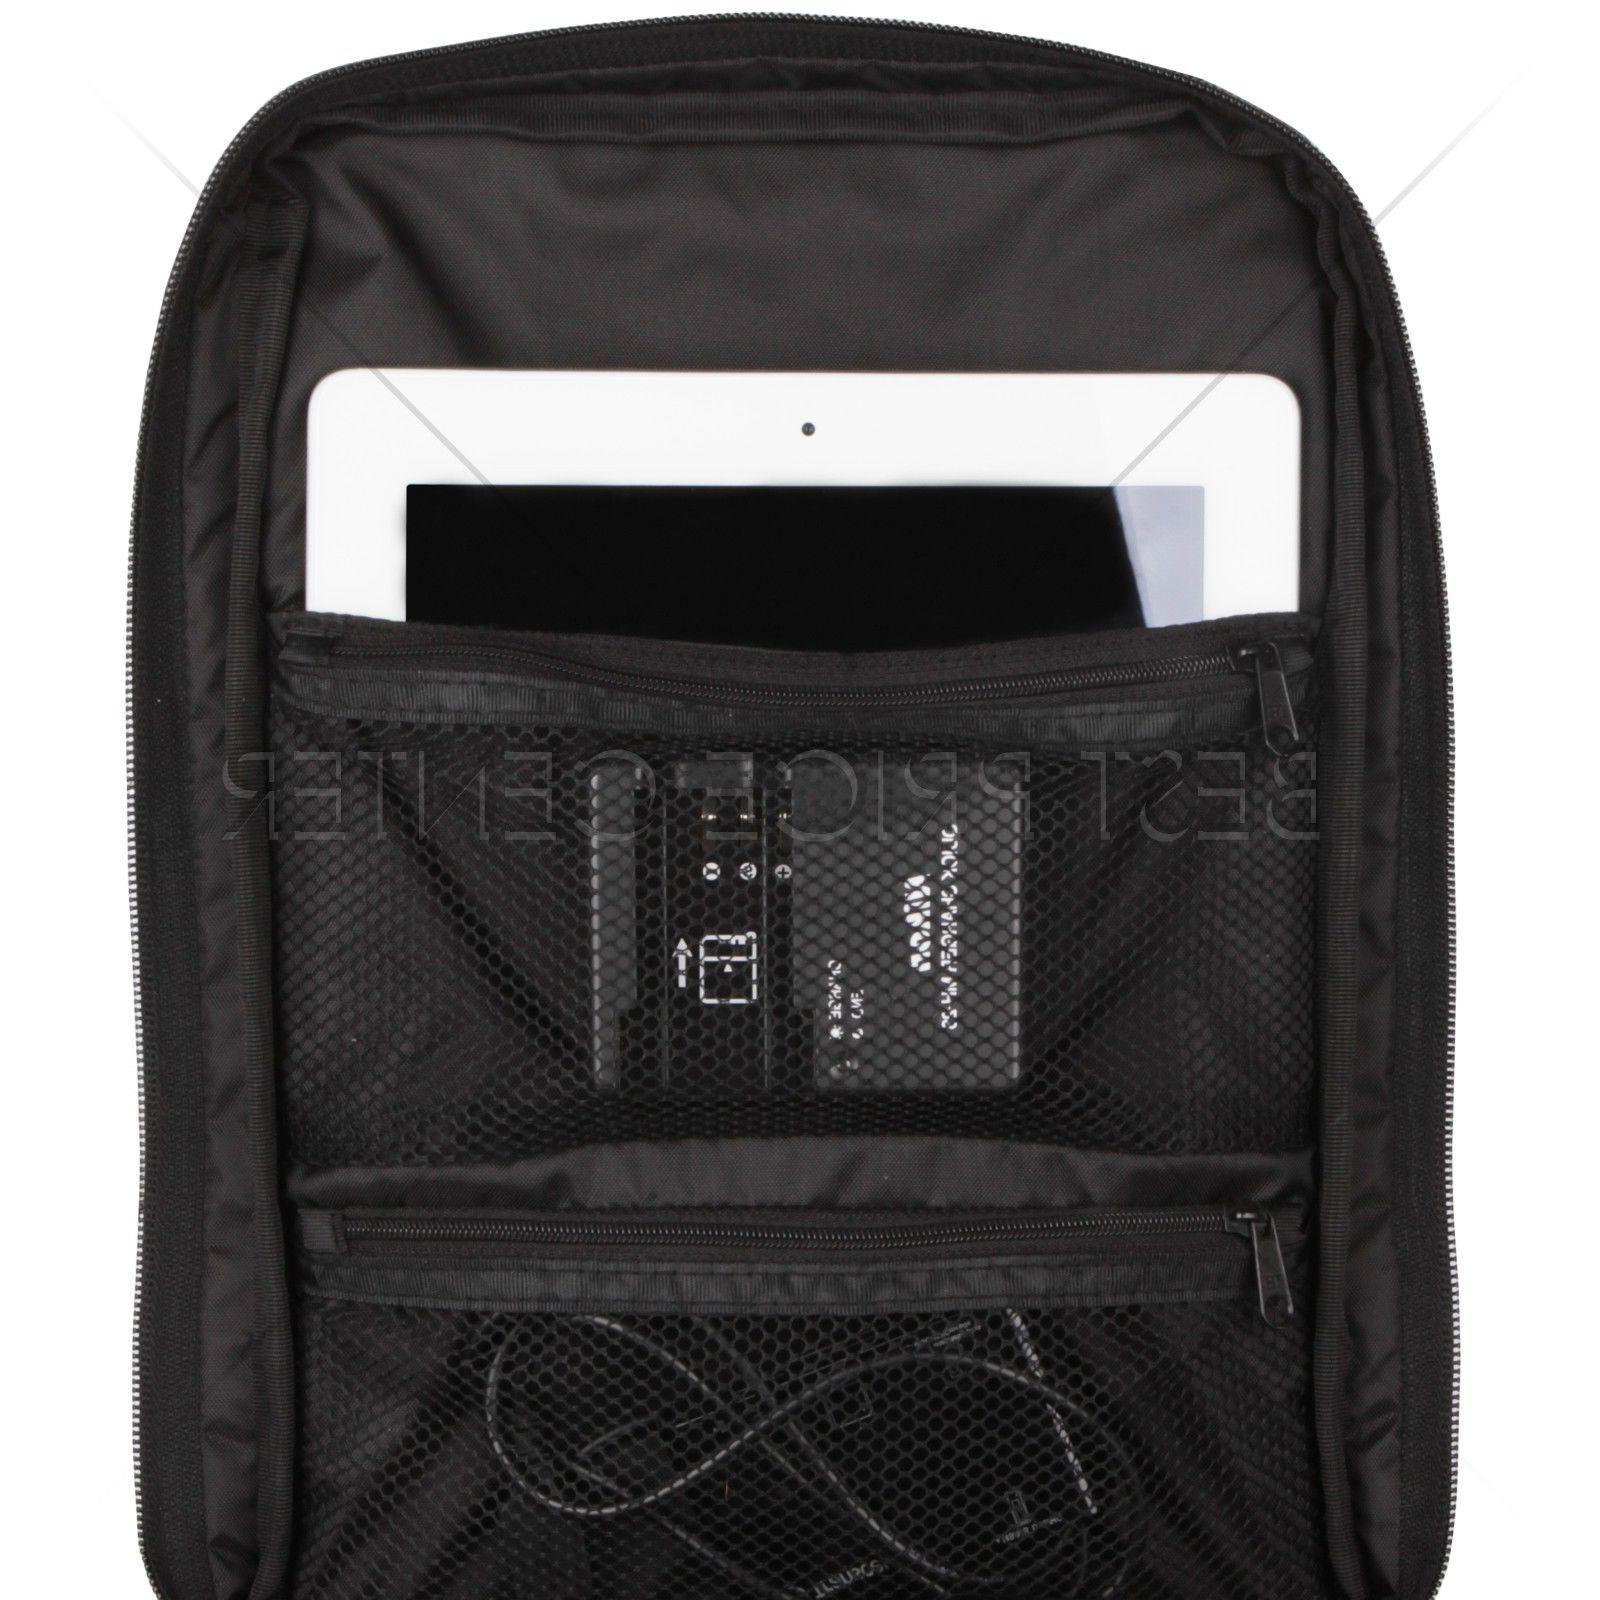 For Lytro SLR PRO Compact Camera Backpack Bag